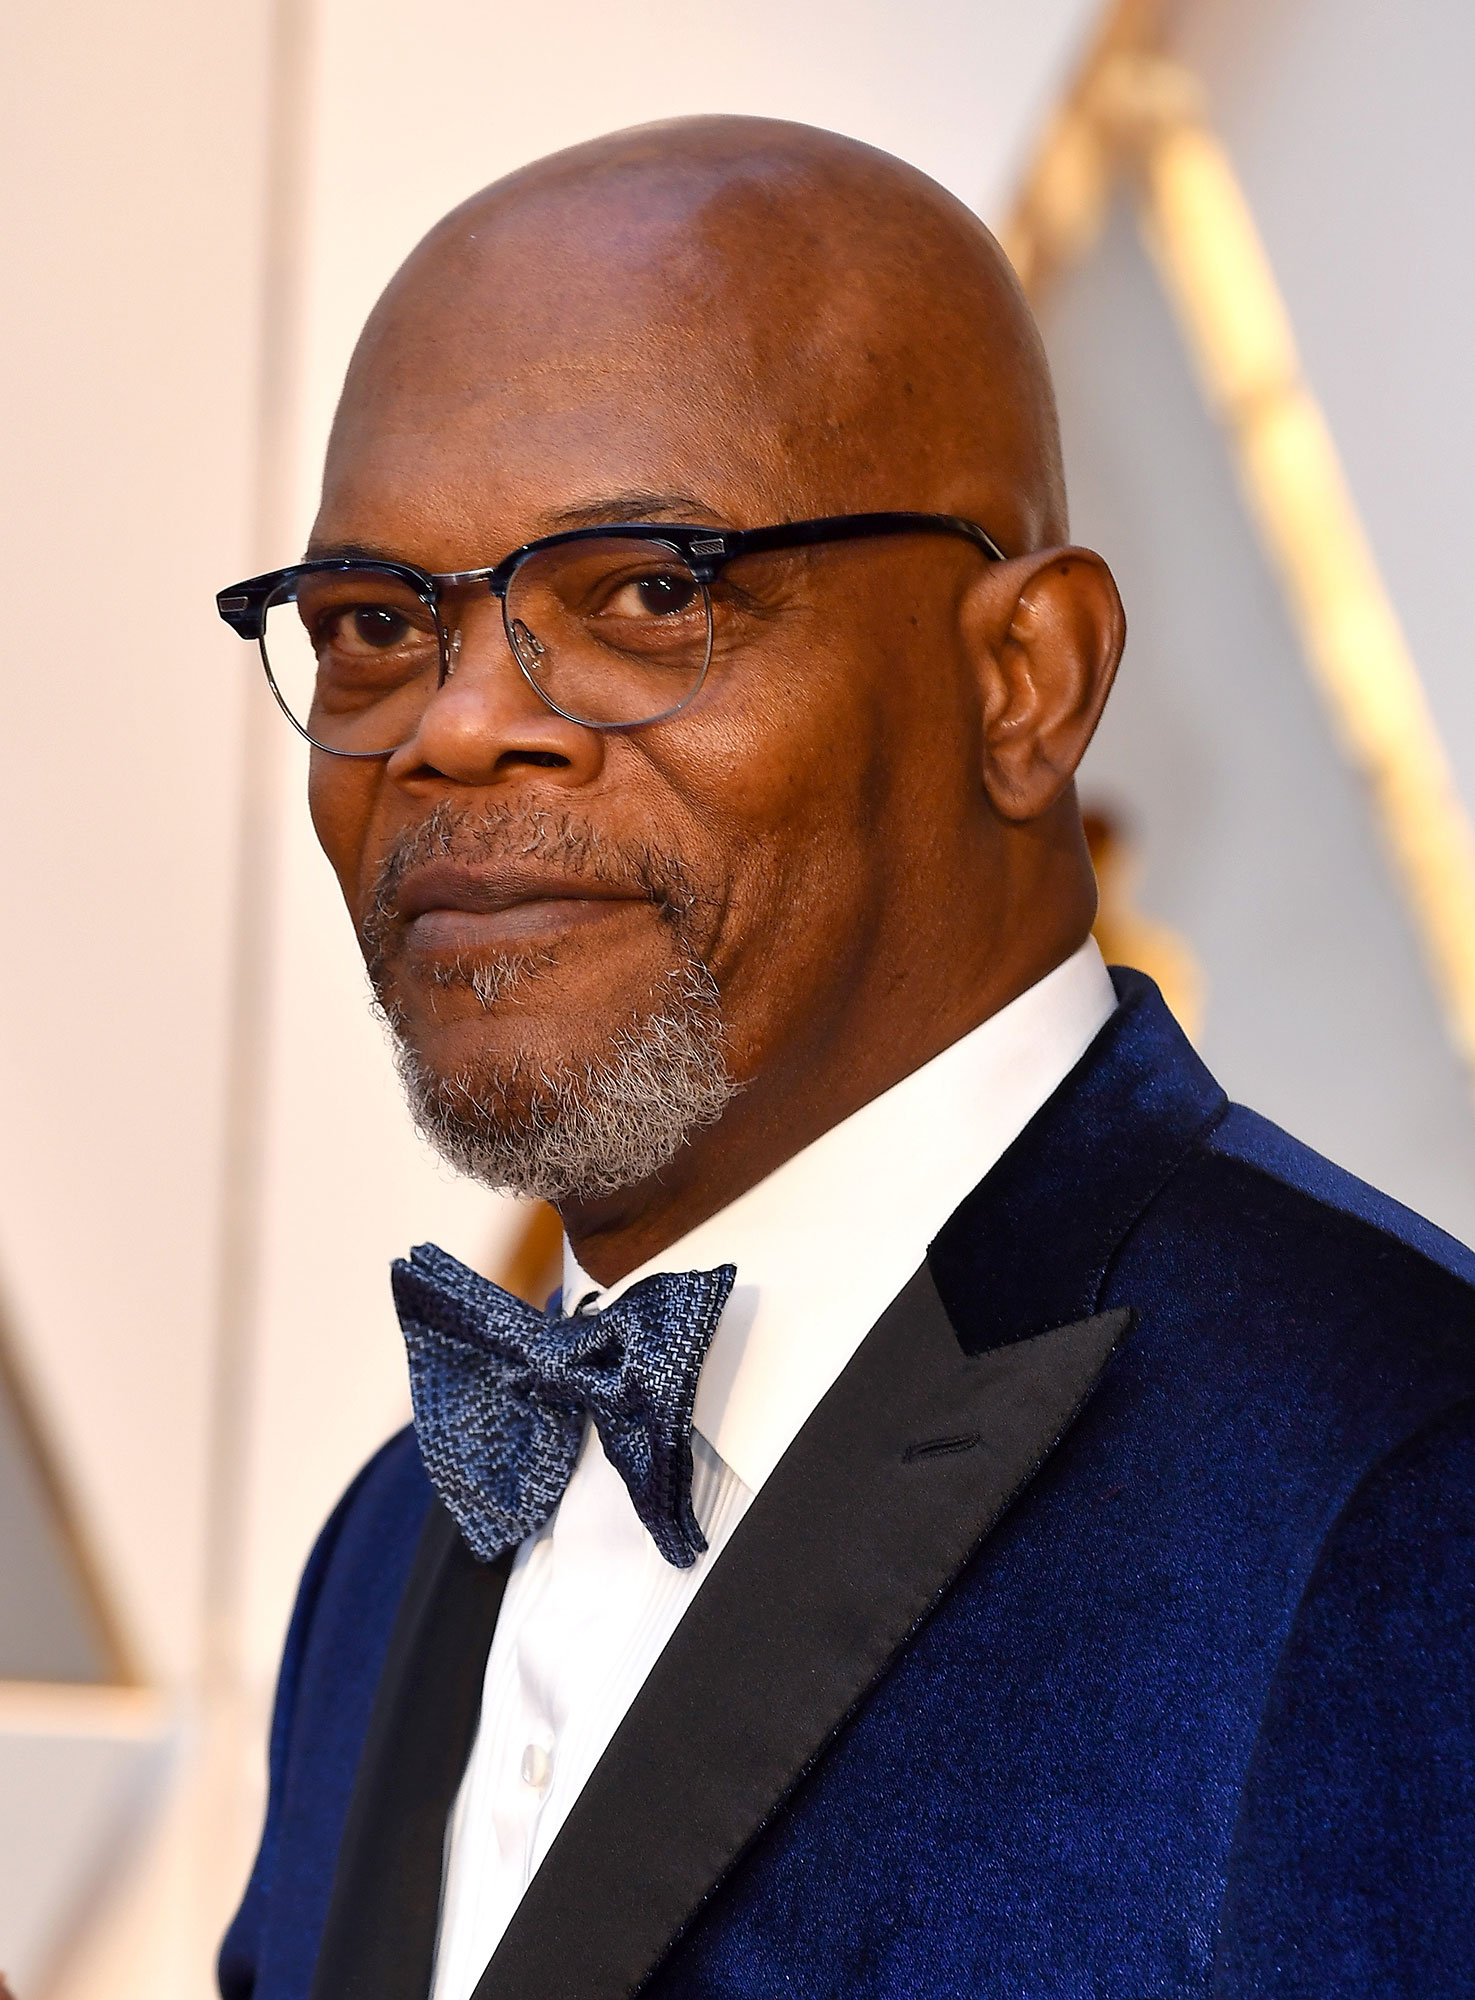 Samuel L. Jackson - Stars Who Have Never Won Oscars - HOLLYWOOD, CA – FEBRUARY 26: Actor Samuel L. Jackson attends the 89th Annual Academy Awards at Hollywood & Highland Center on February 26, 2017 in Hollywood, California. (Photo by Jeff Kravitz/FilmMagic)